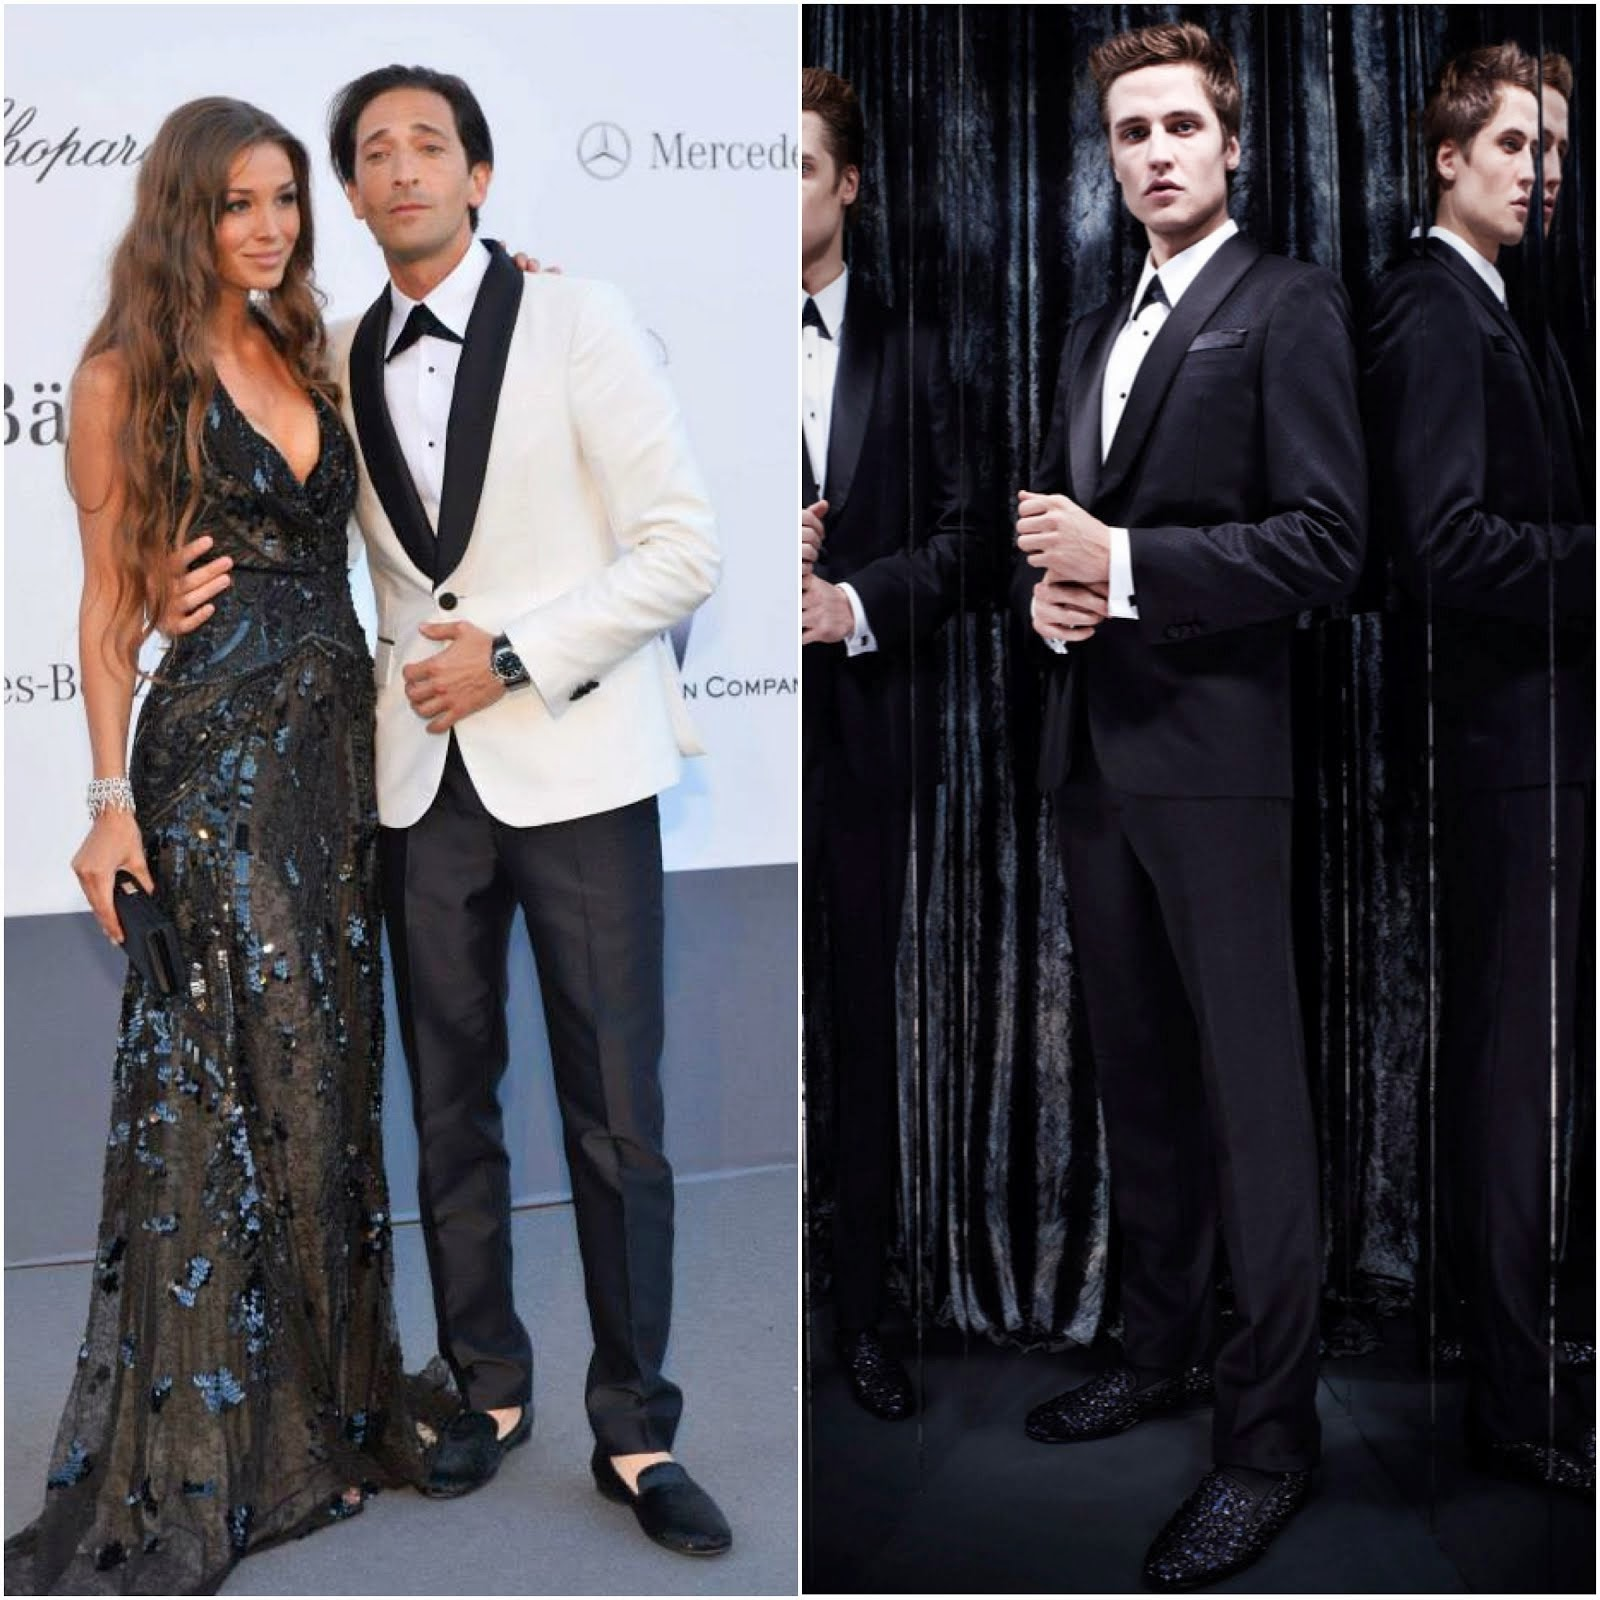 00O00 Menswear Blog: Adrien Brody in Roberto Cavalli - amfAR's Cinema Against AIDS Gala 2013